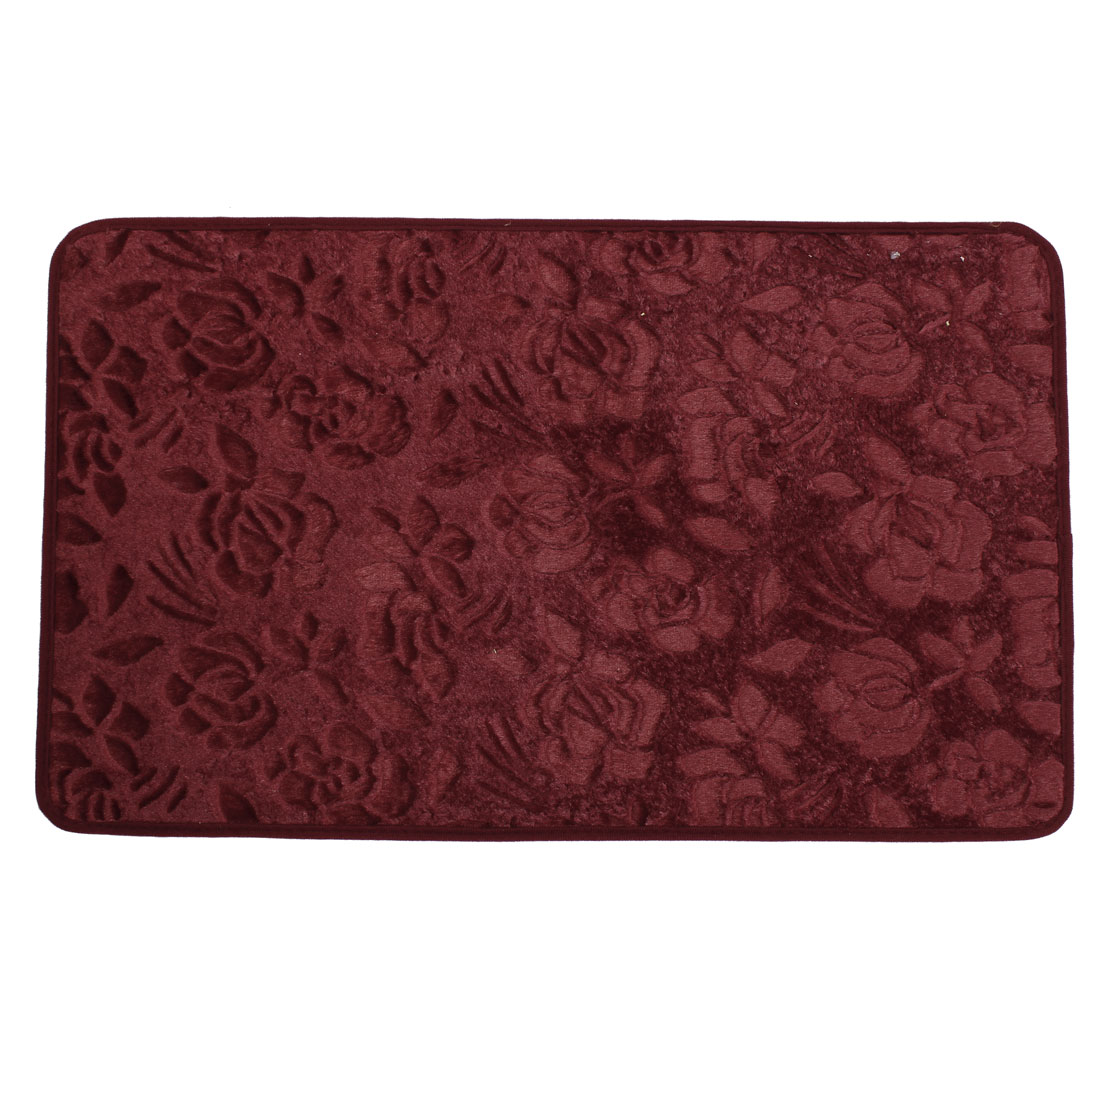 80cm x 50cm Burgundy Rose Print Nonslip Kitchen Floor Mat Area Rug Carpet